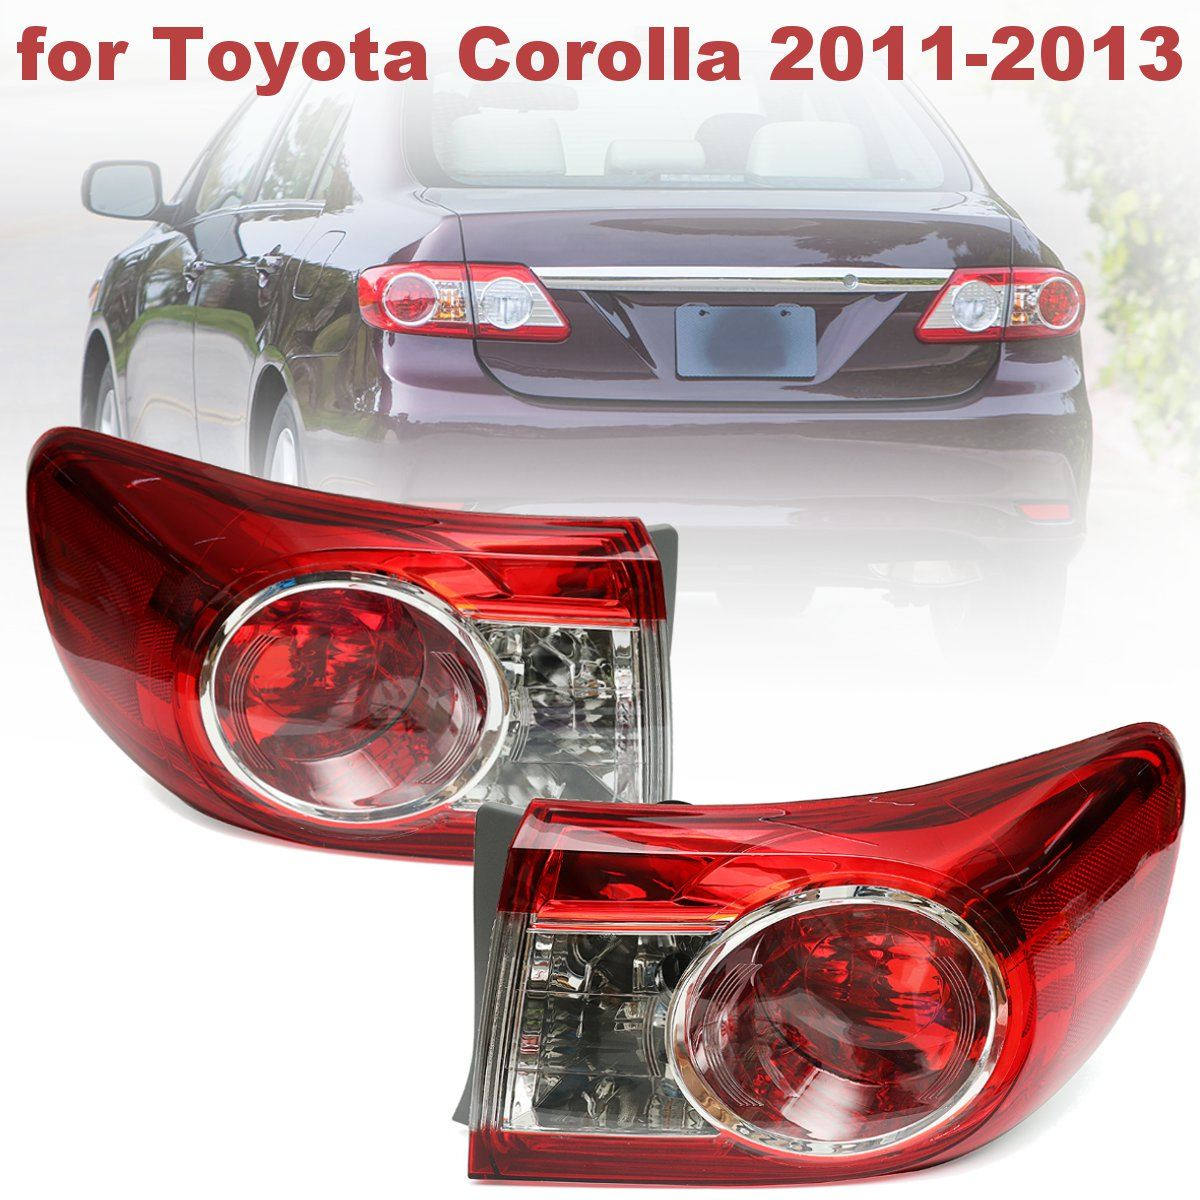 #TO2804111 #81560-02580 Replacement Pair Red Rear Left Right Side Tail Lights Brake Lamps for Toyota Corolla 2011 2012 2013